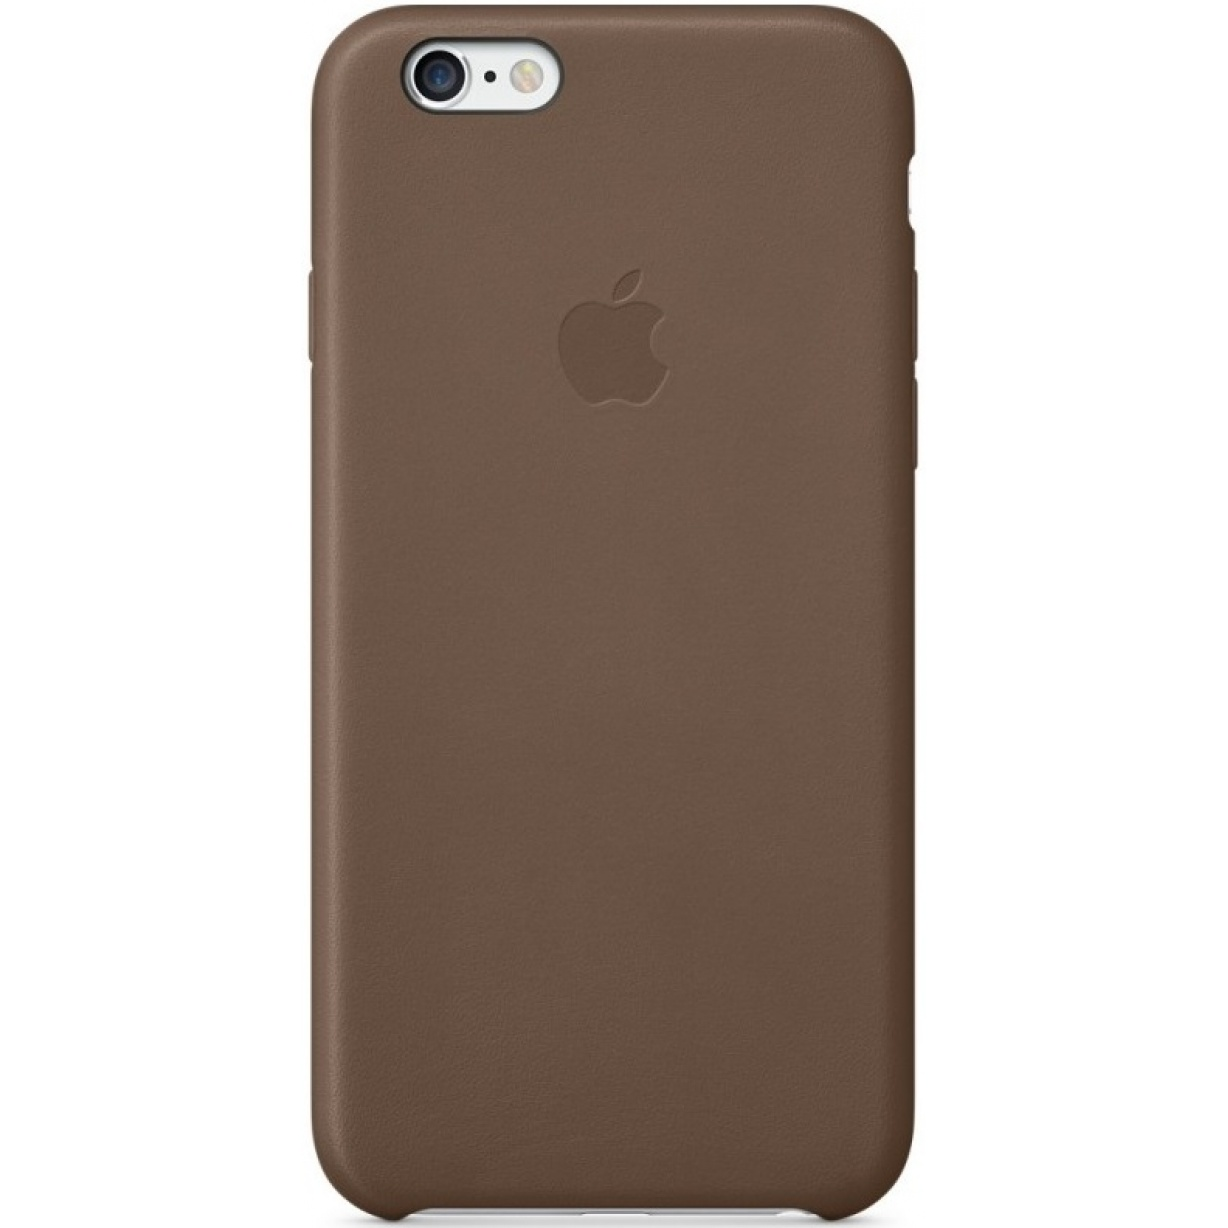 Nugarėlė Apple iPhone 6 Plus/6s Plus Leather Case Brown